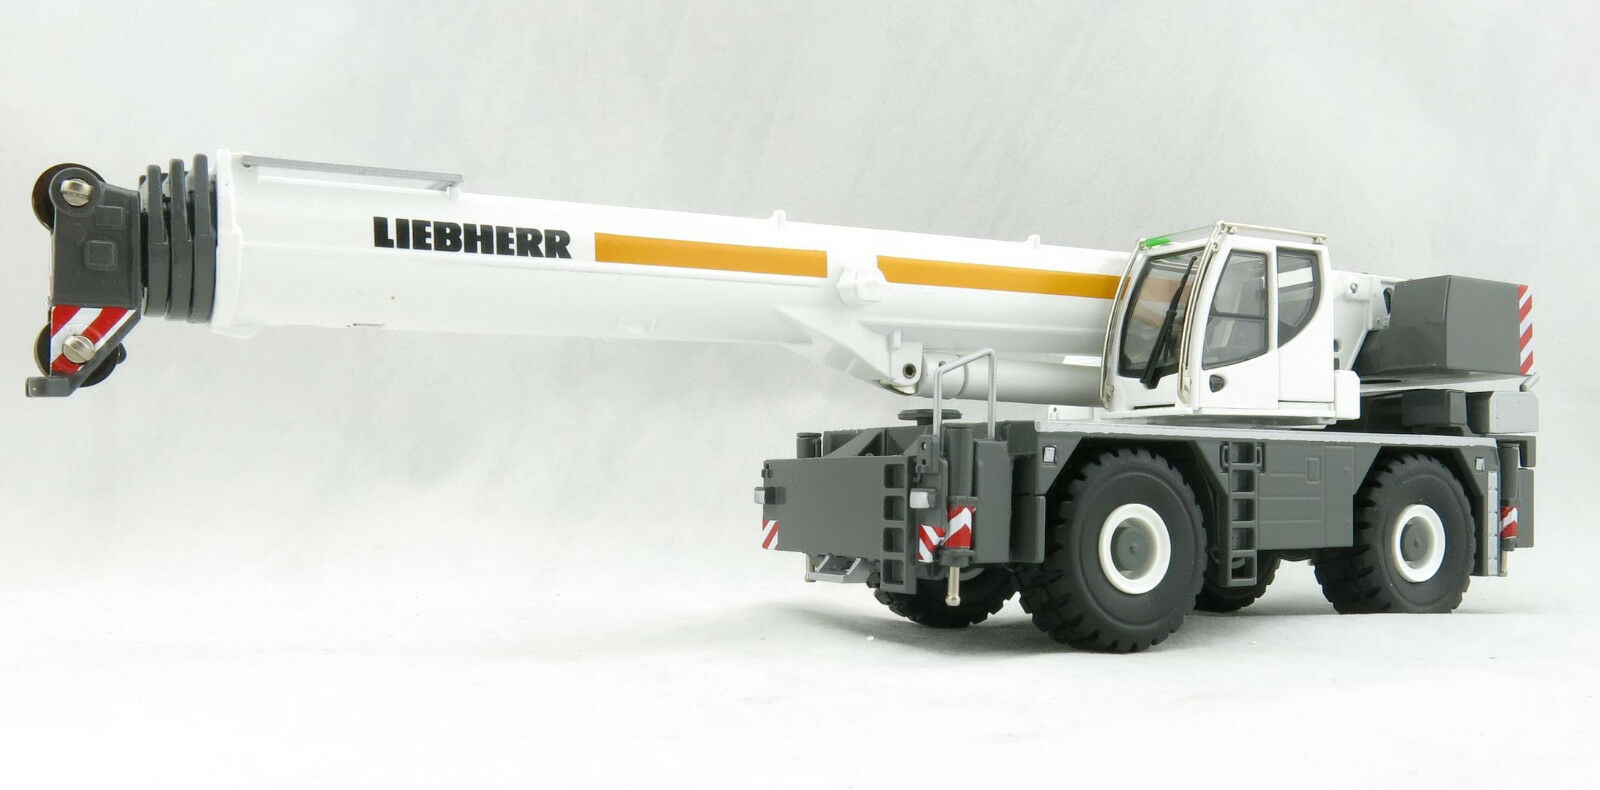 Conrad 2118 0 Liebherr LRT 1100 2.1 Rough Terrain Mobile Telescopic Crane 1 50